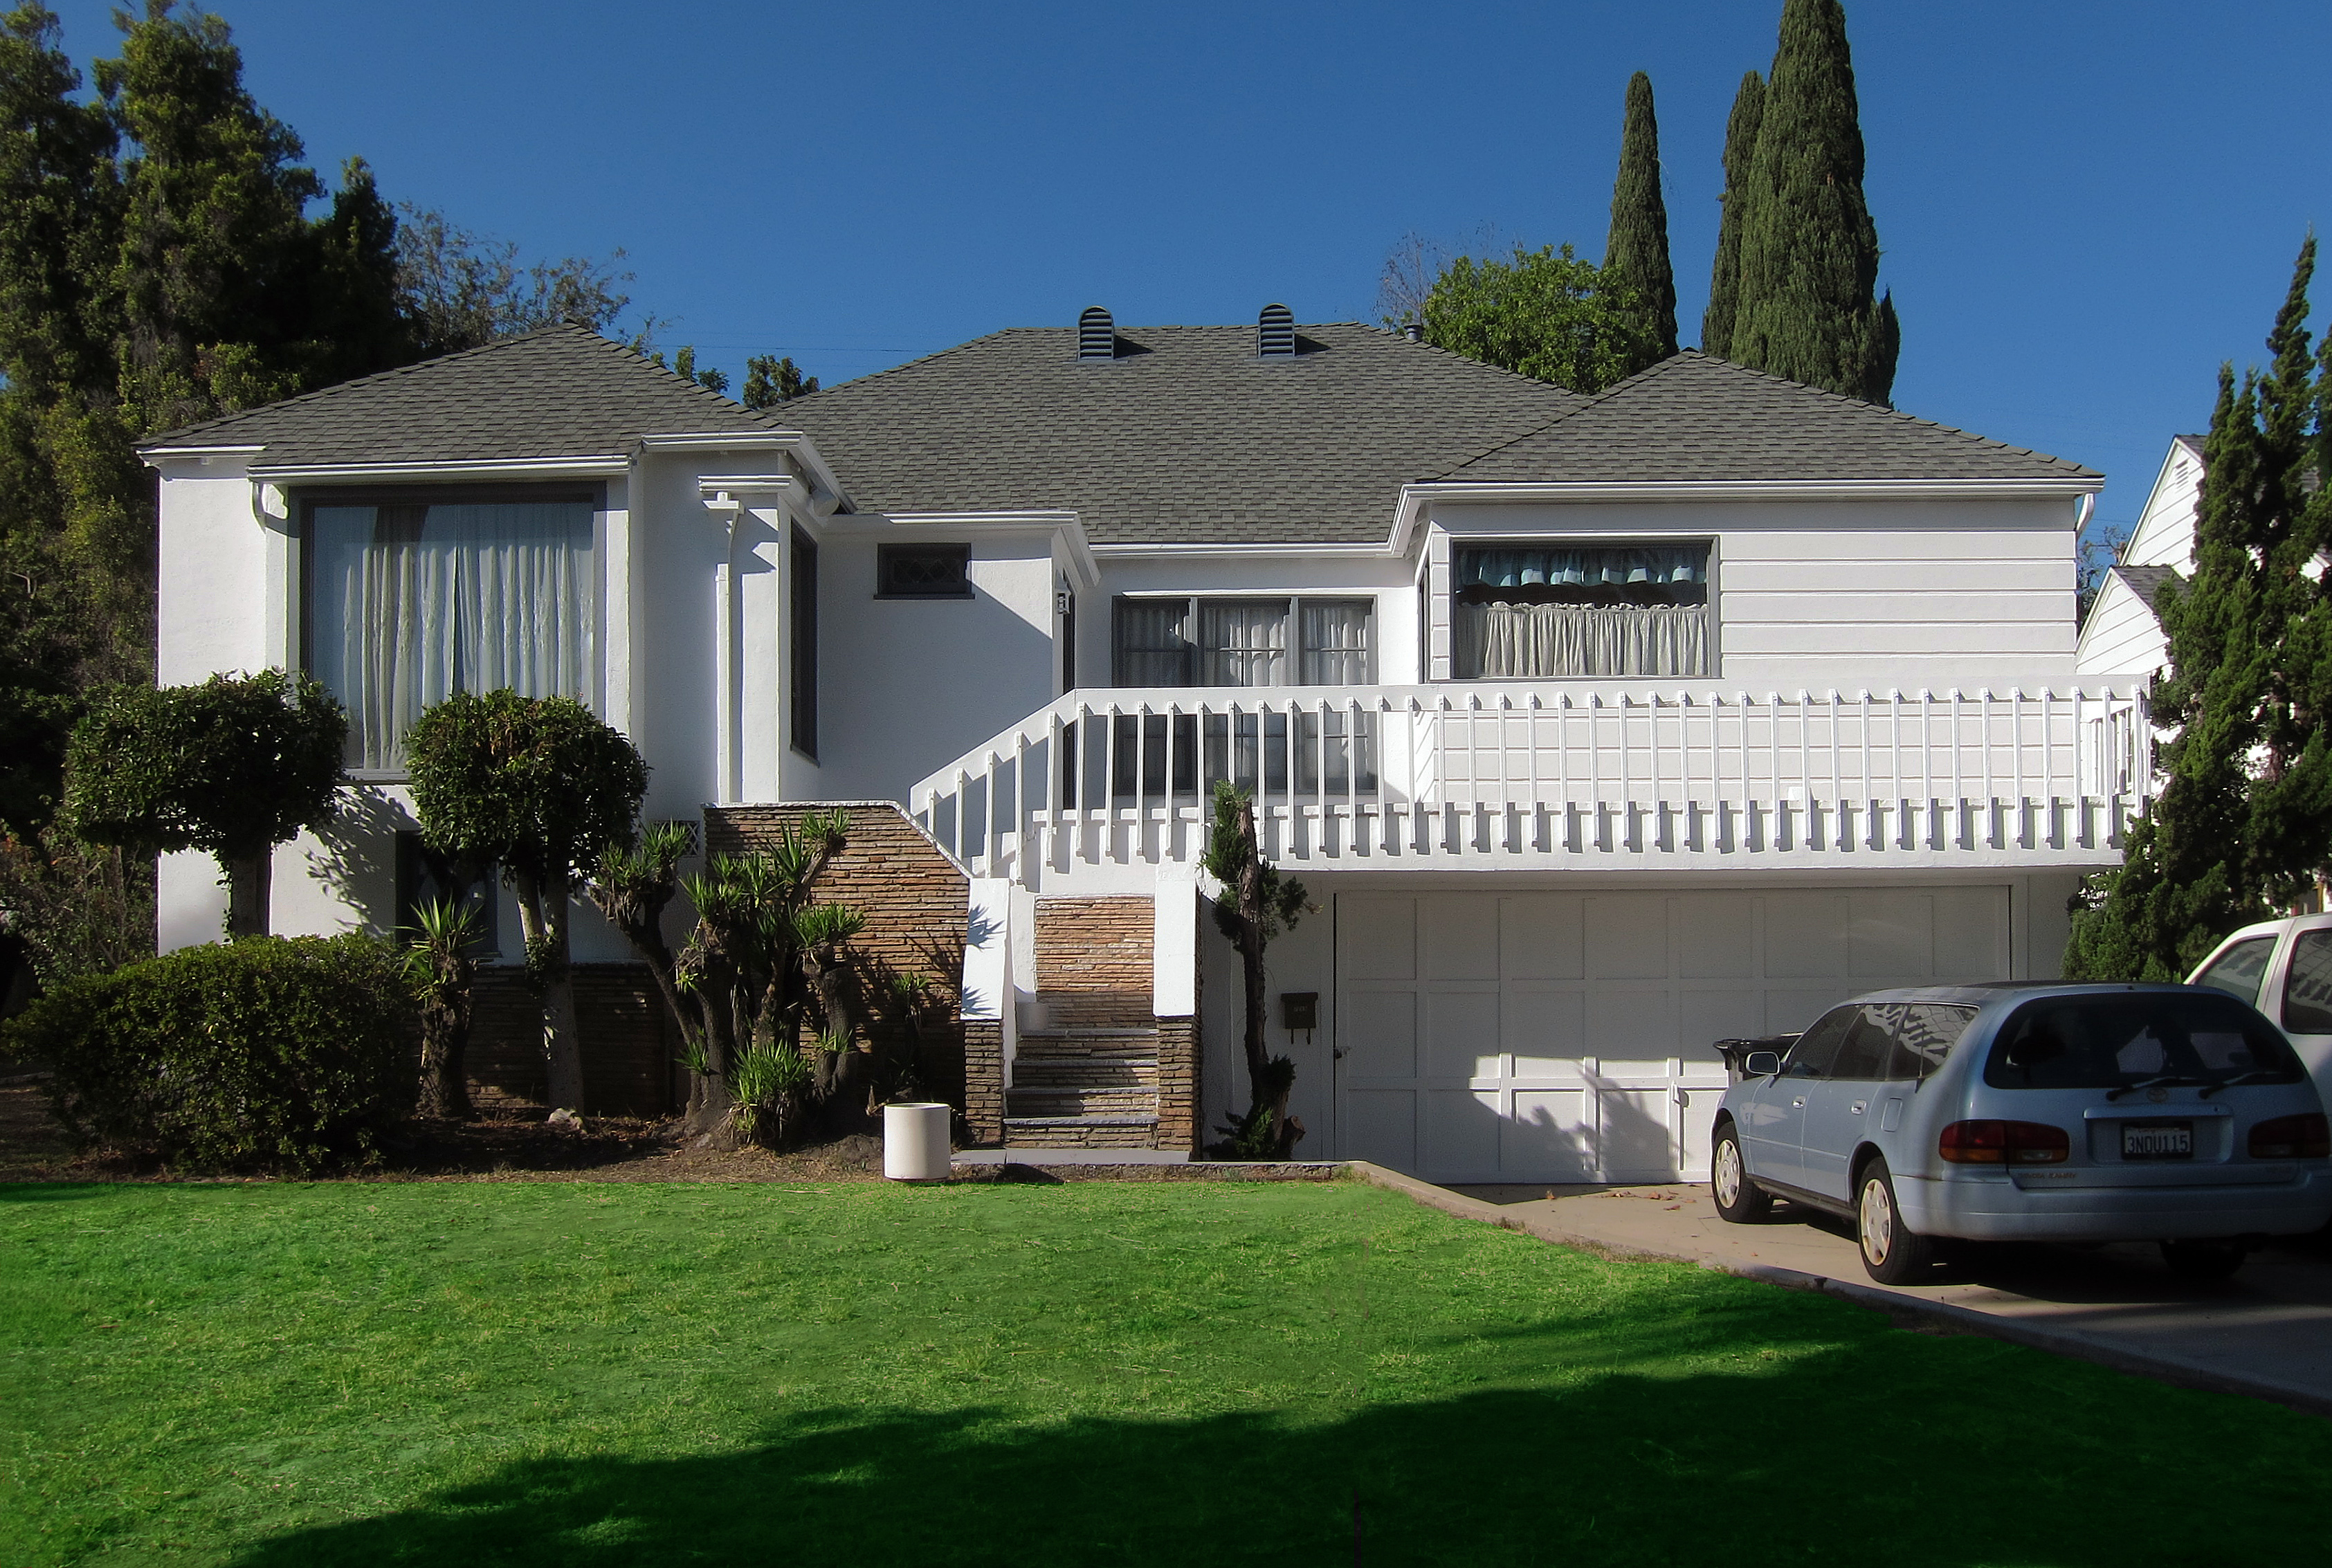 after preparation white primer was applied to both stucco and wood trim stucco was painted with behr premium plus exterior bit of sugar flat white - Painted Wood Home 2015